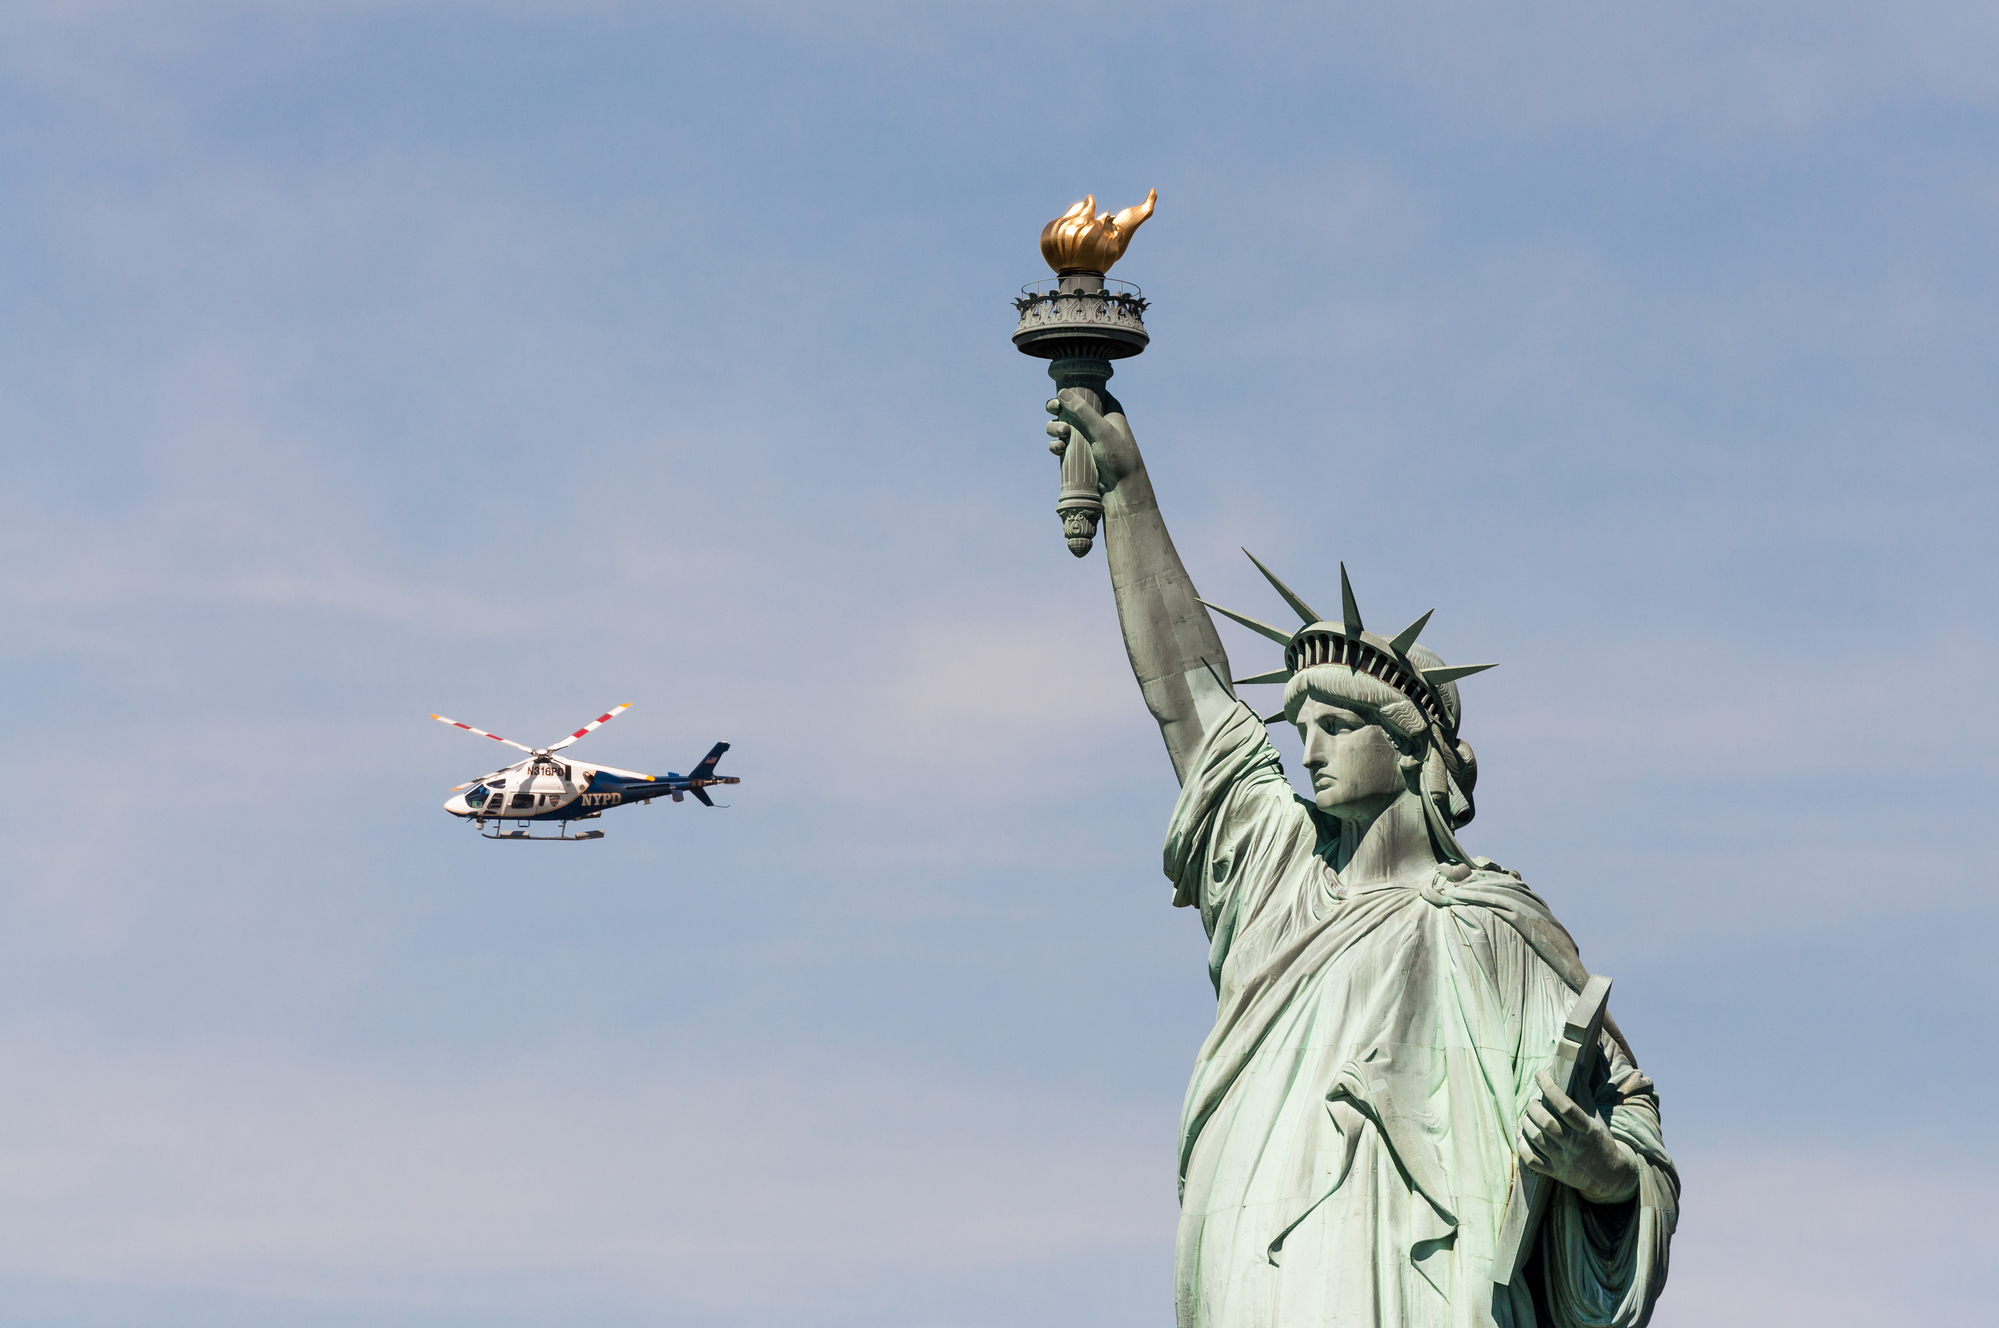 pic-of-helicopter-flying-past-statue-of-liberty-how-much-spending-money-new-york